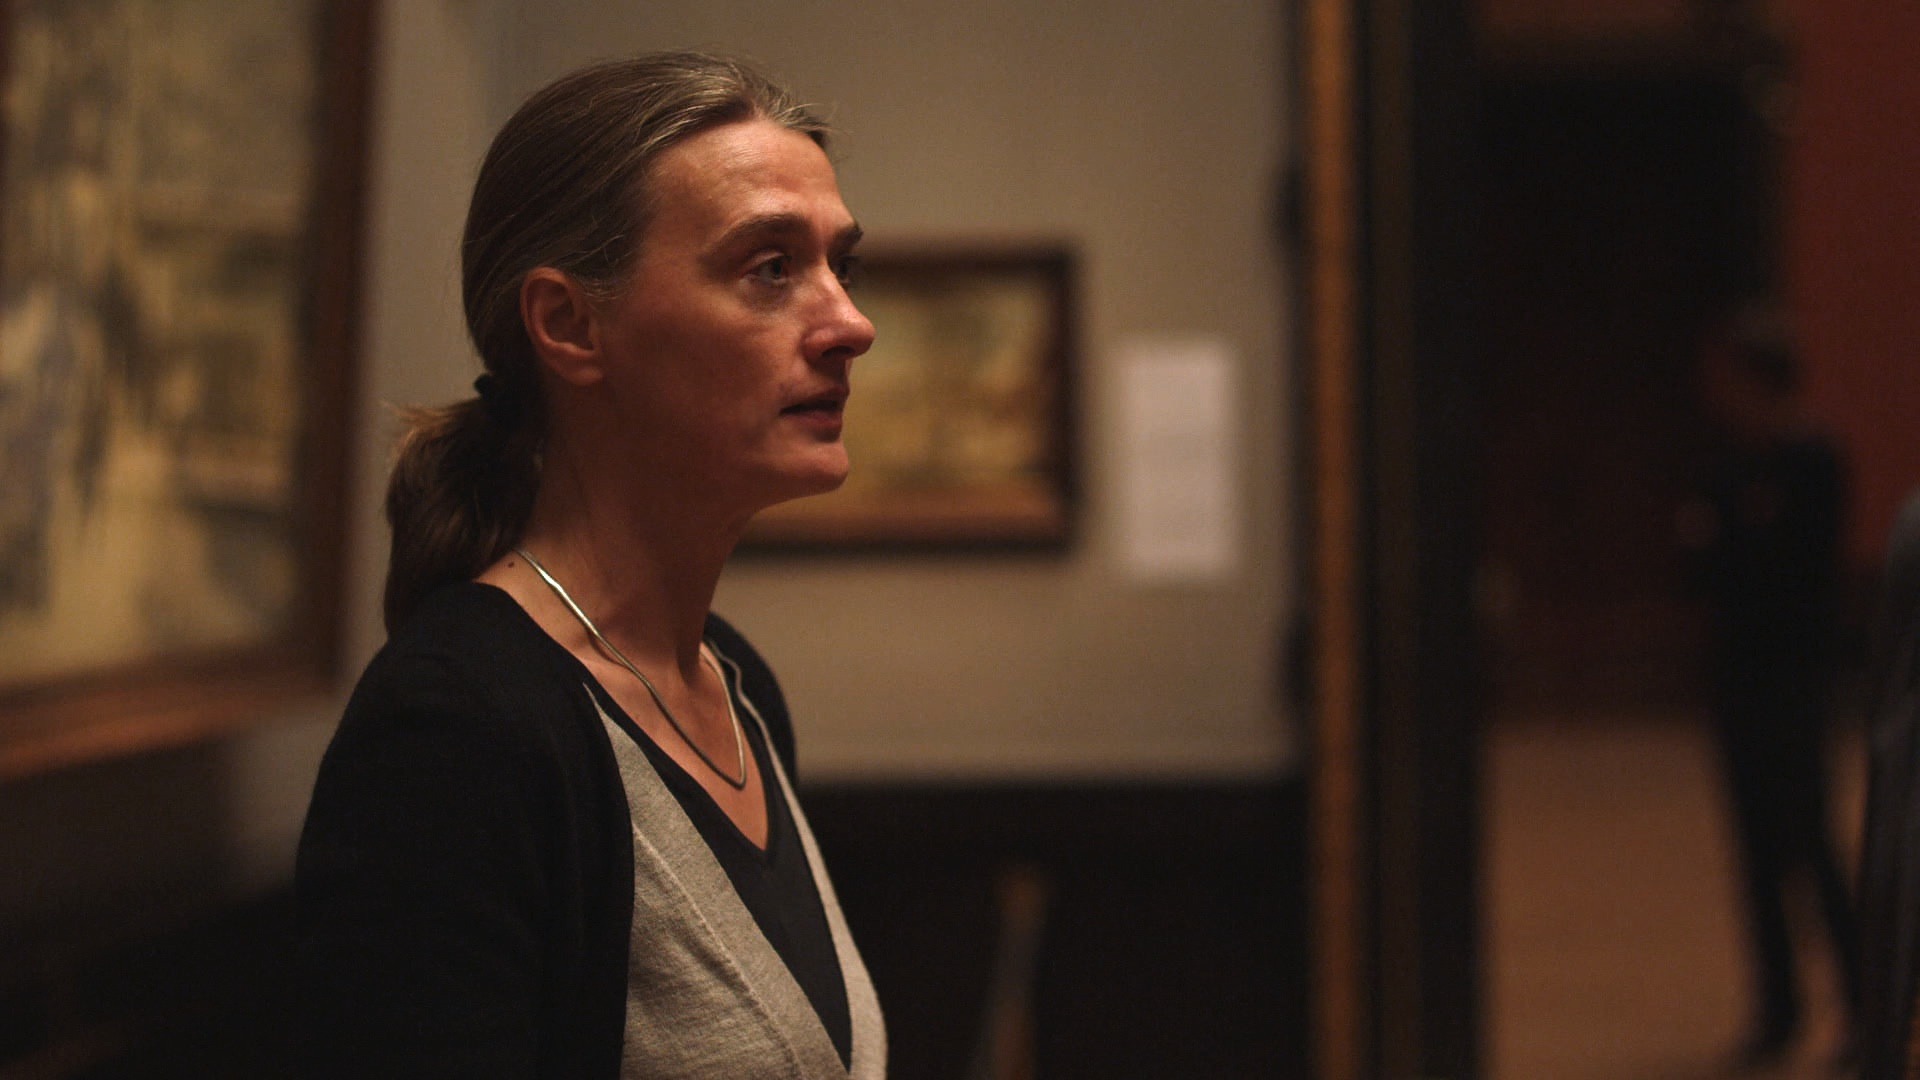 Ela Piplits plays a docent at the Kunsthistorisches Museum in the film